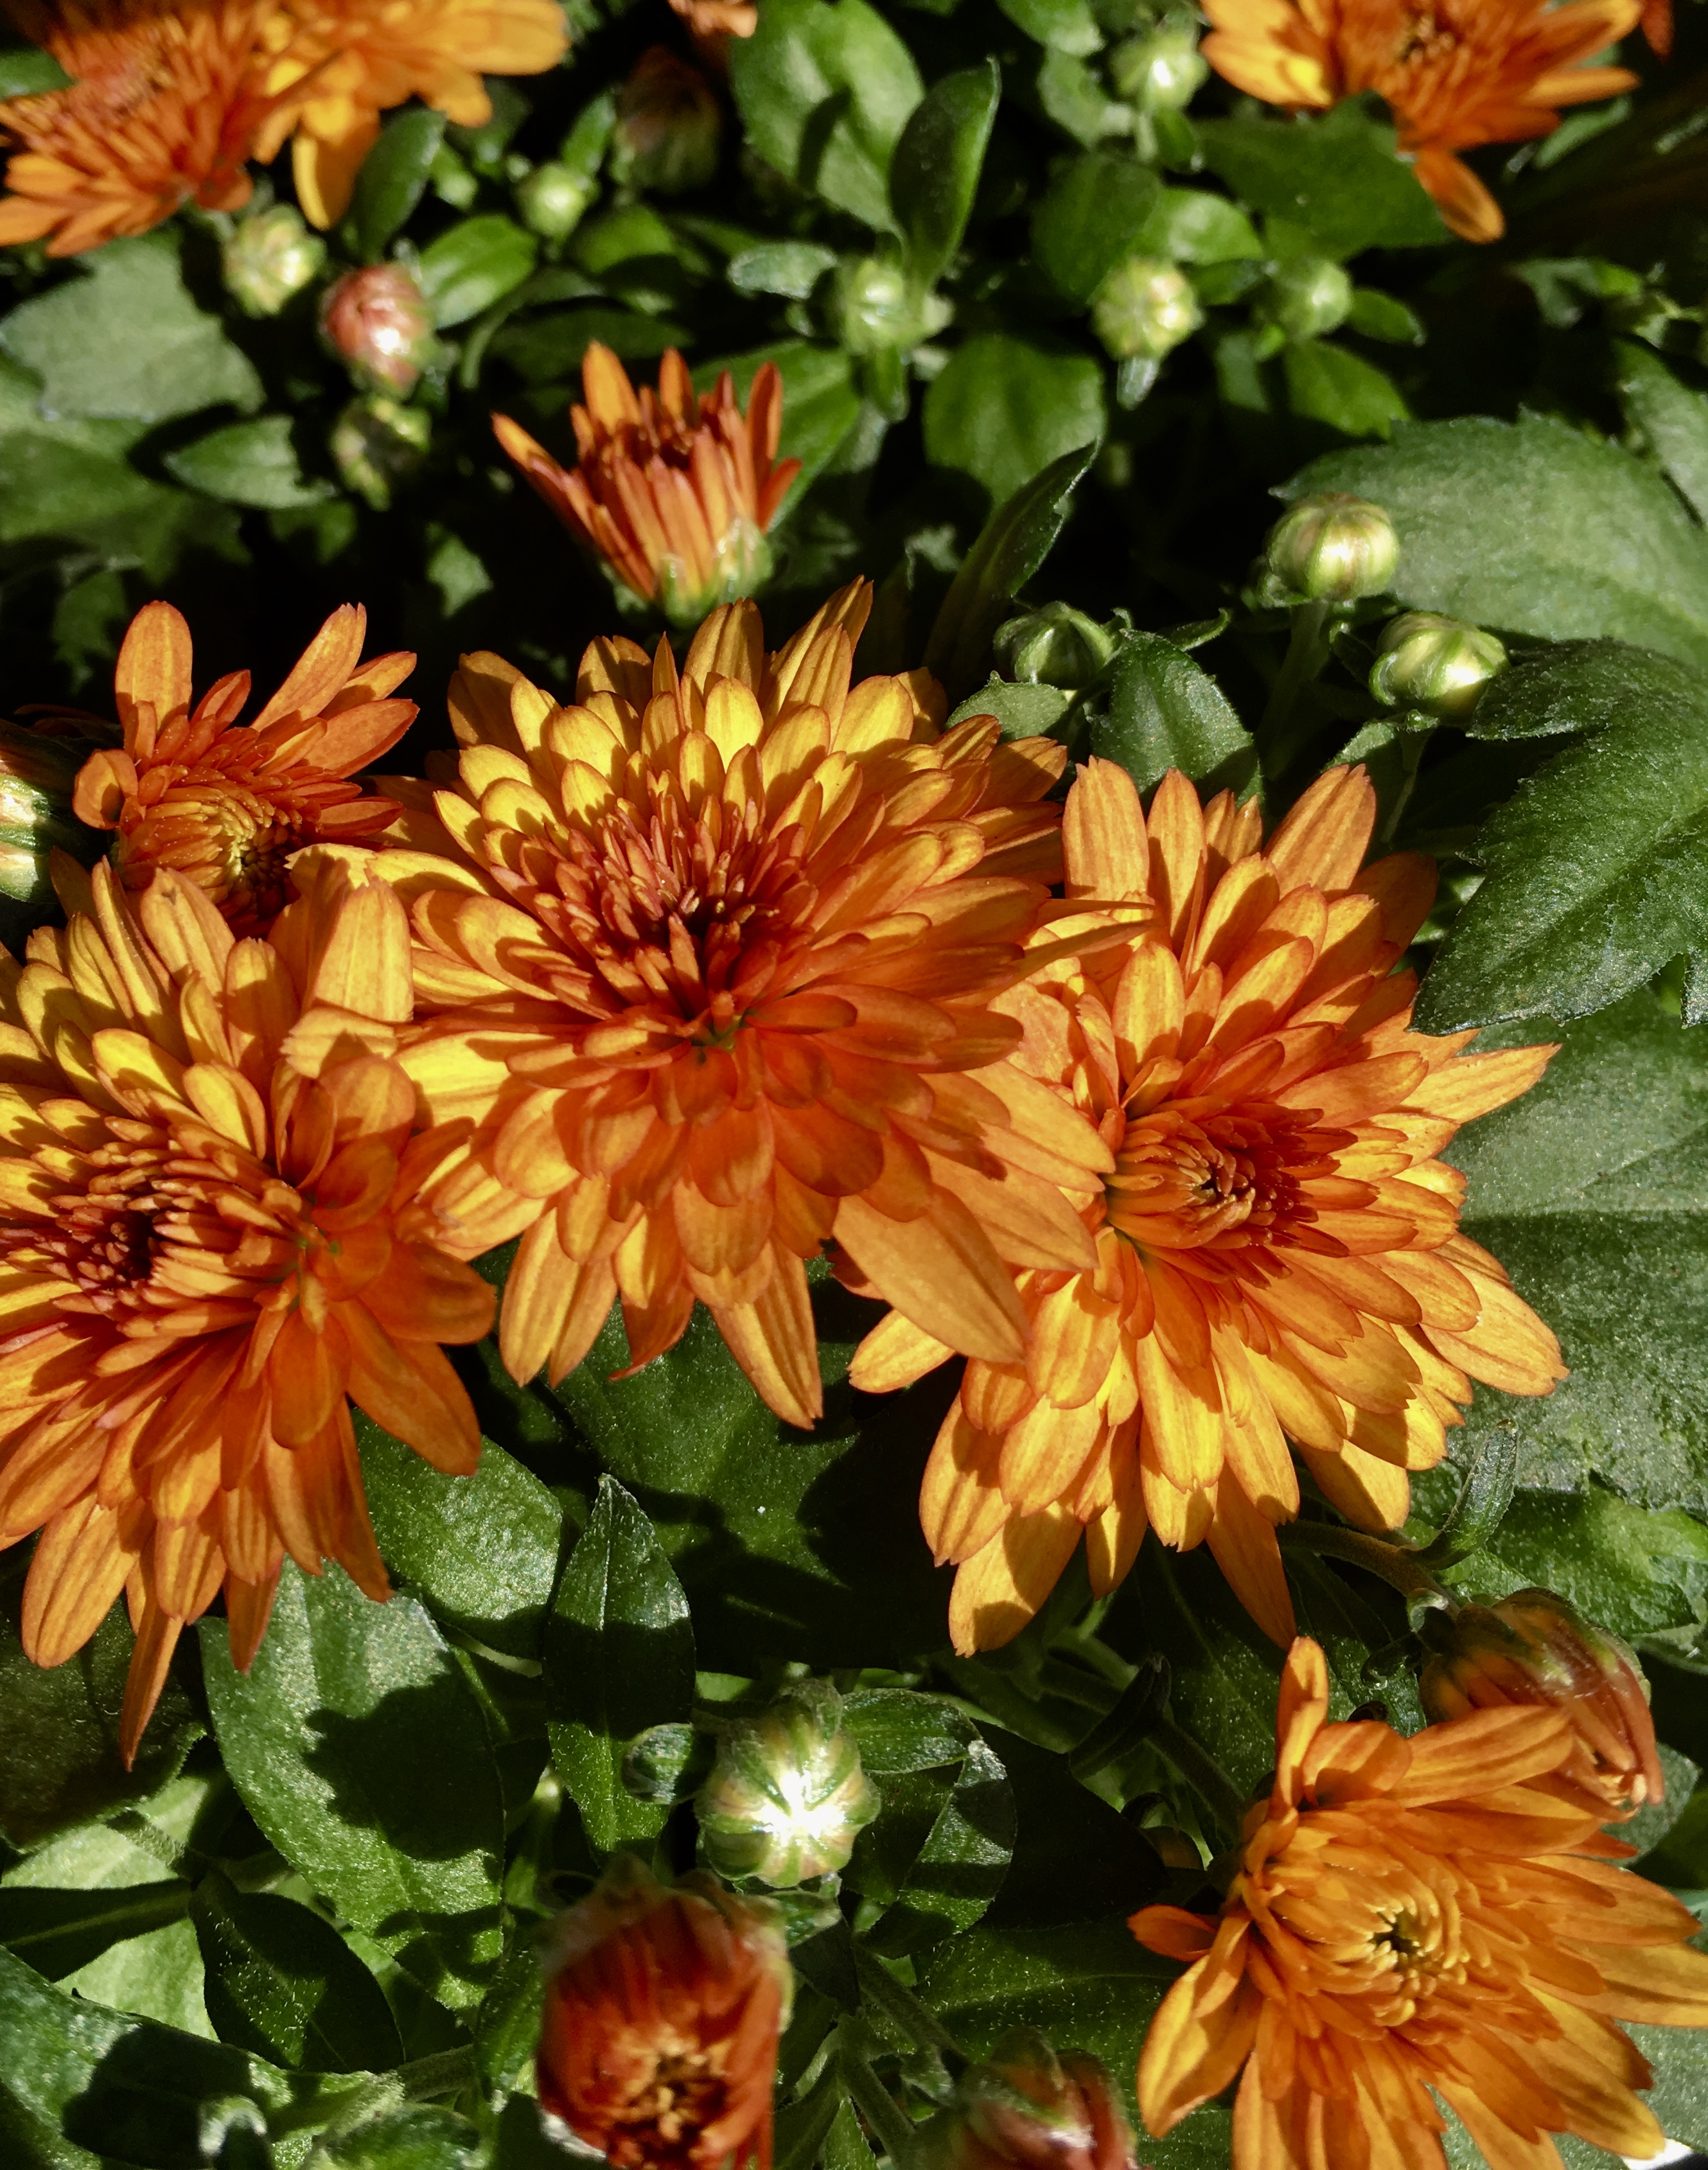 Orange chrysanthemums by Jez Braithwaite